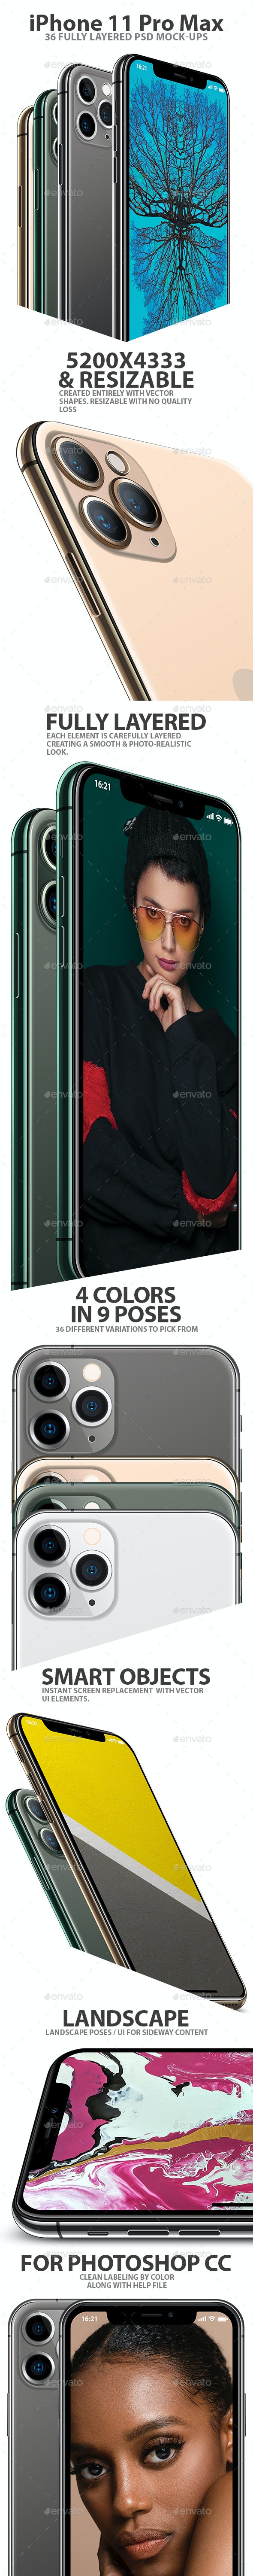 iPhone 11 Pro Layered PSD Mock-ups in 4 Colors - Mobile Displays